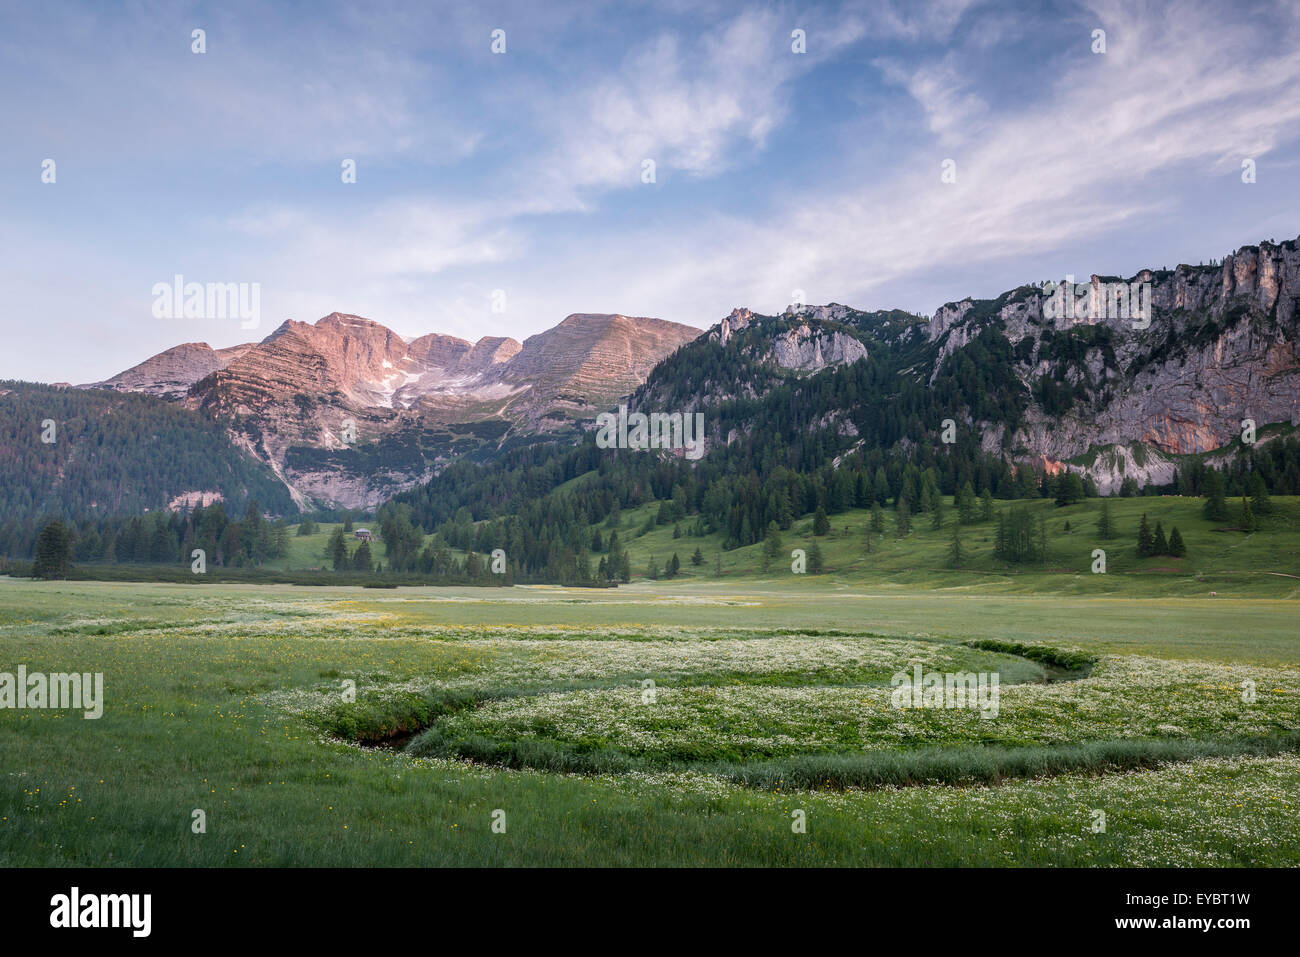 Morning atmosphere at Wurzeralm, Austria Stock Photo